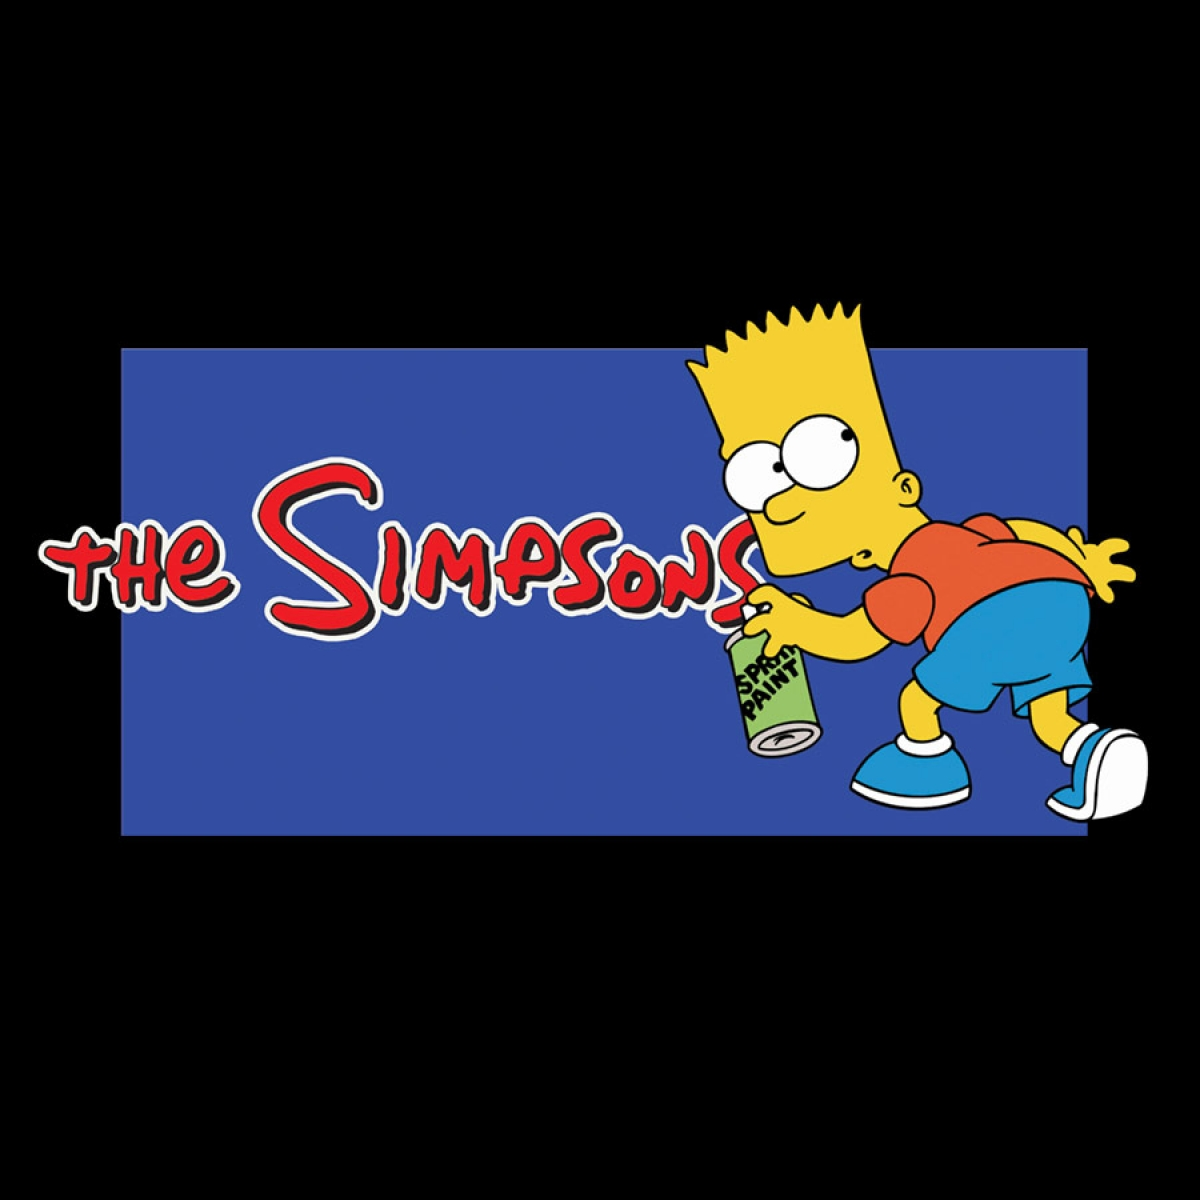 The Simpsons Print Signage